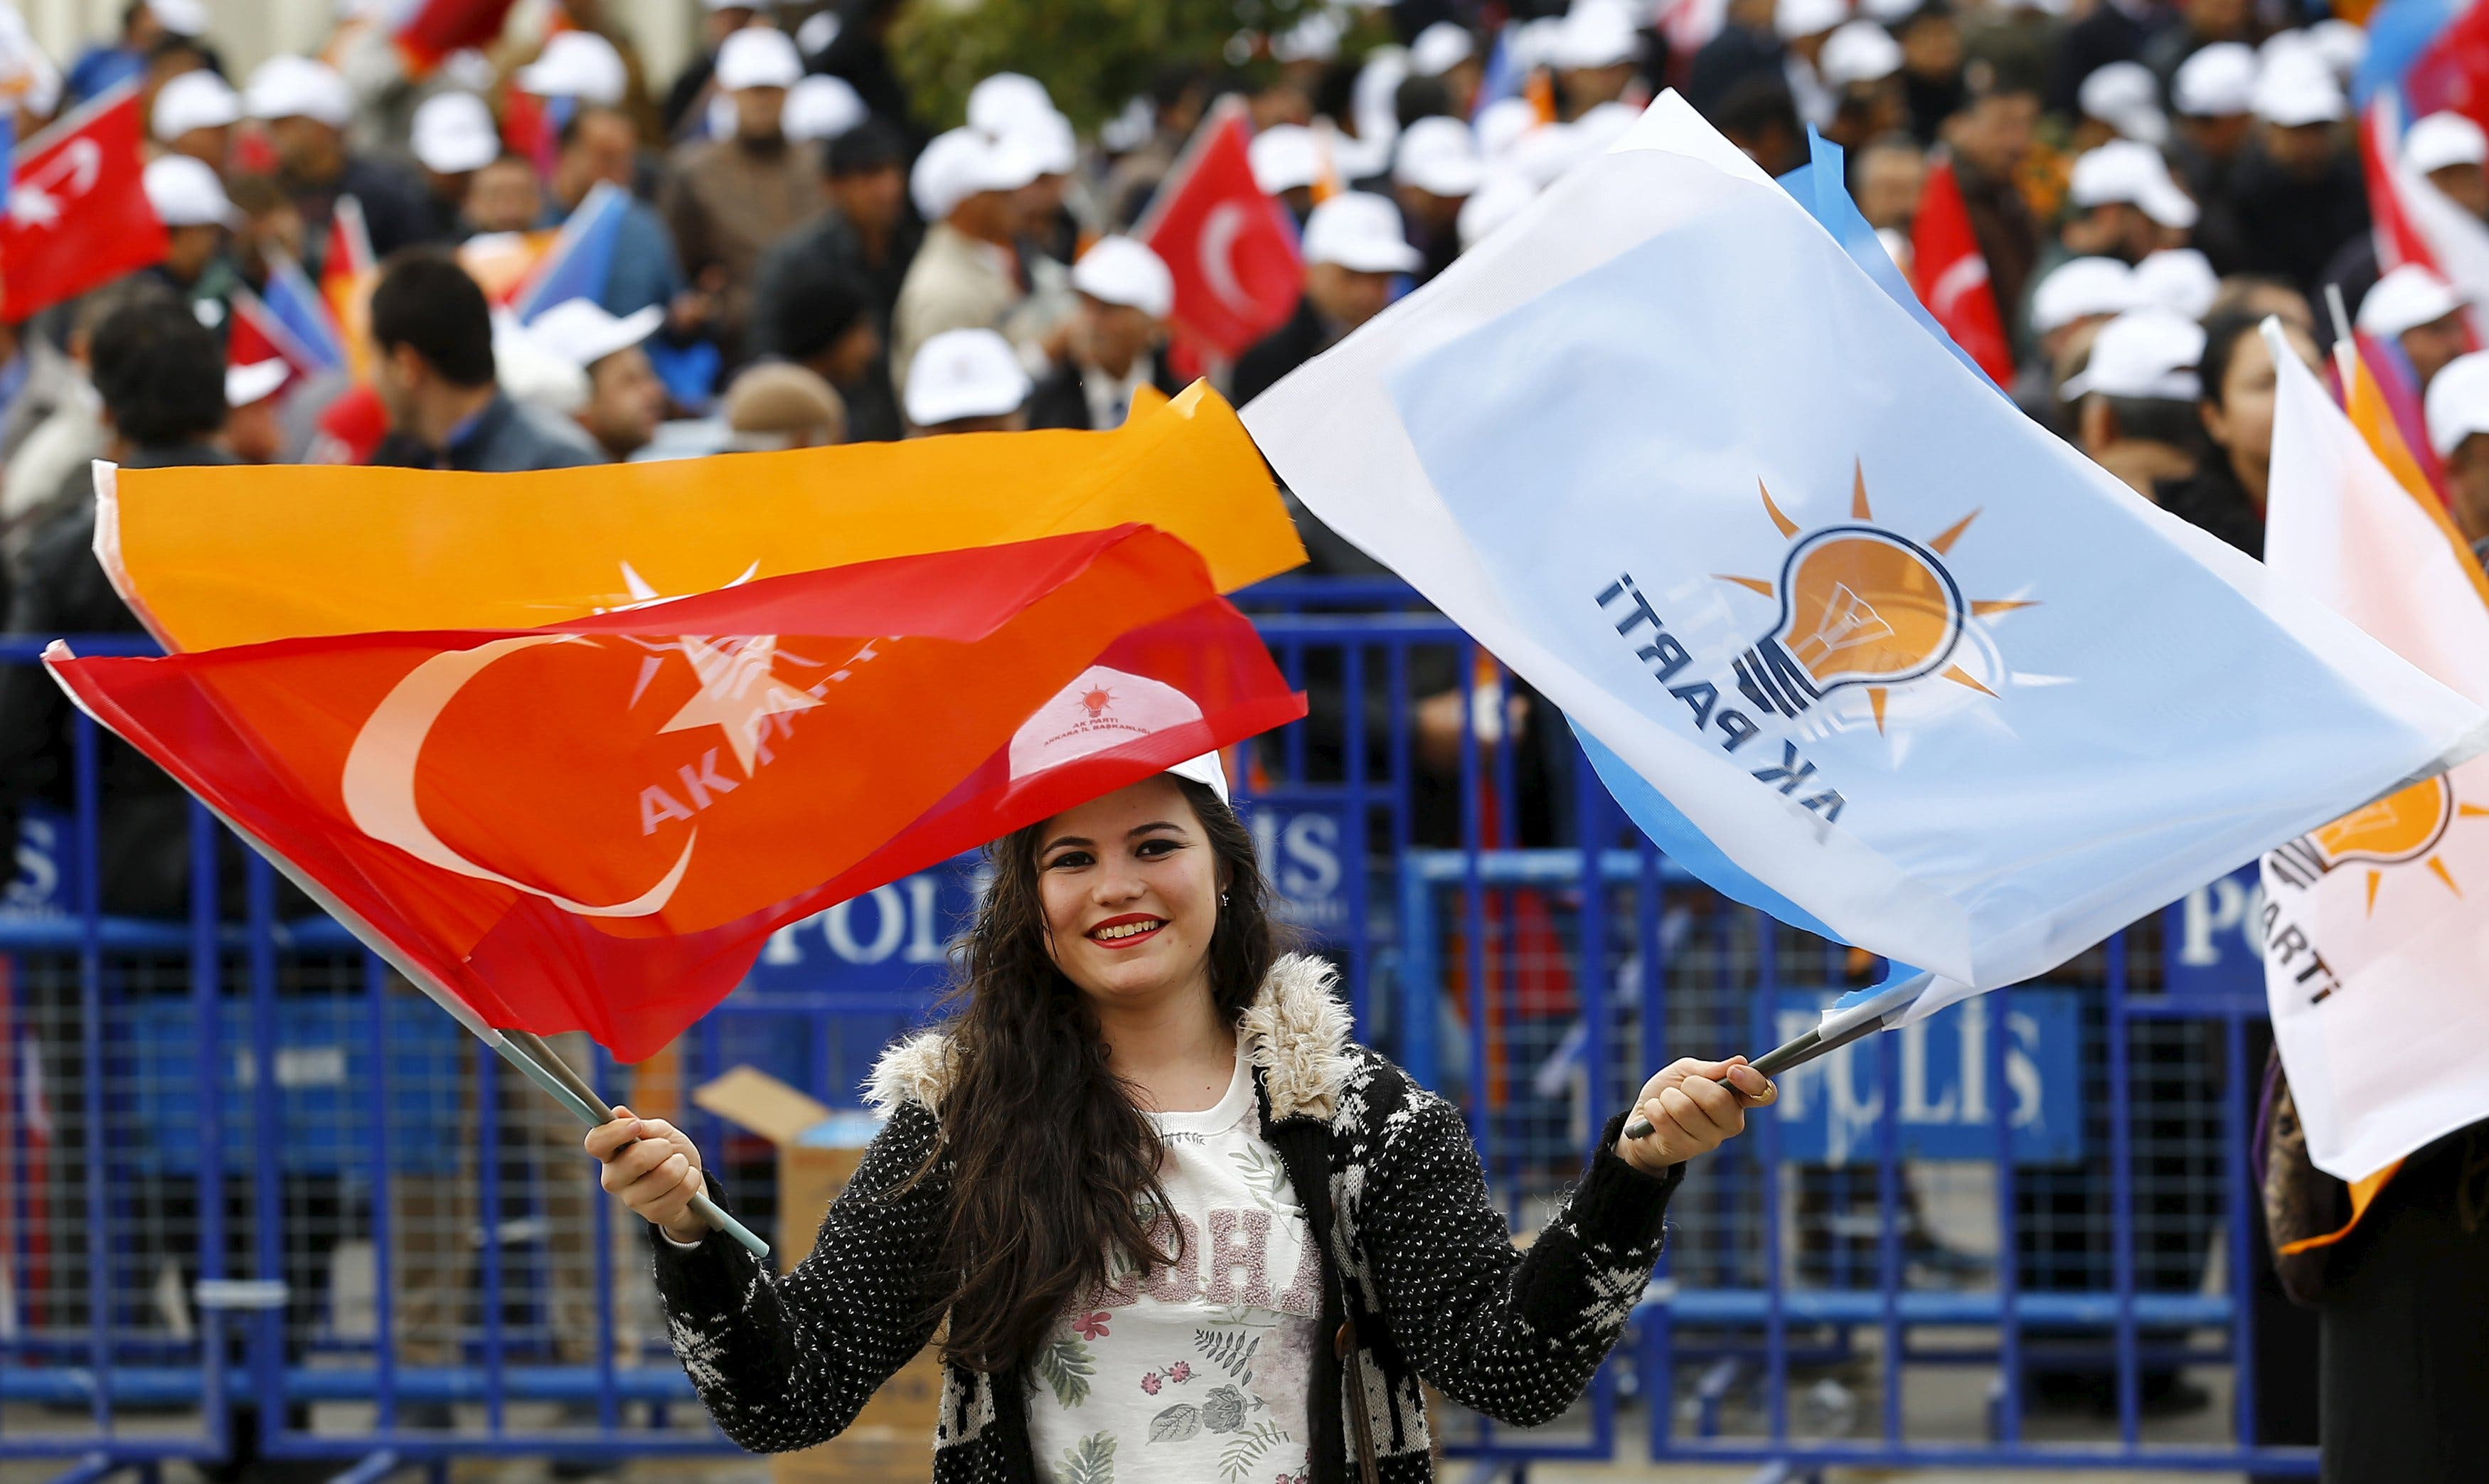 A supporter of the ruling AK Party waves national and party flags during an election rally in Ankara, Turkey, October 31, 2015.